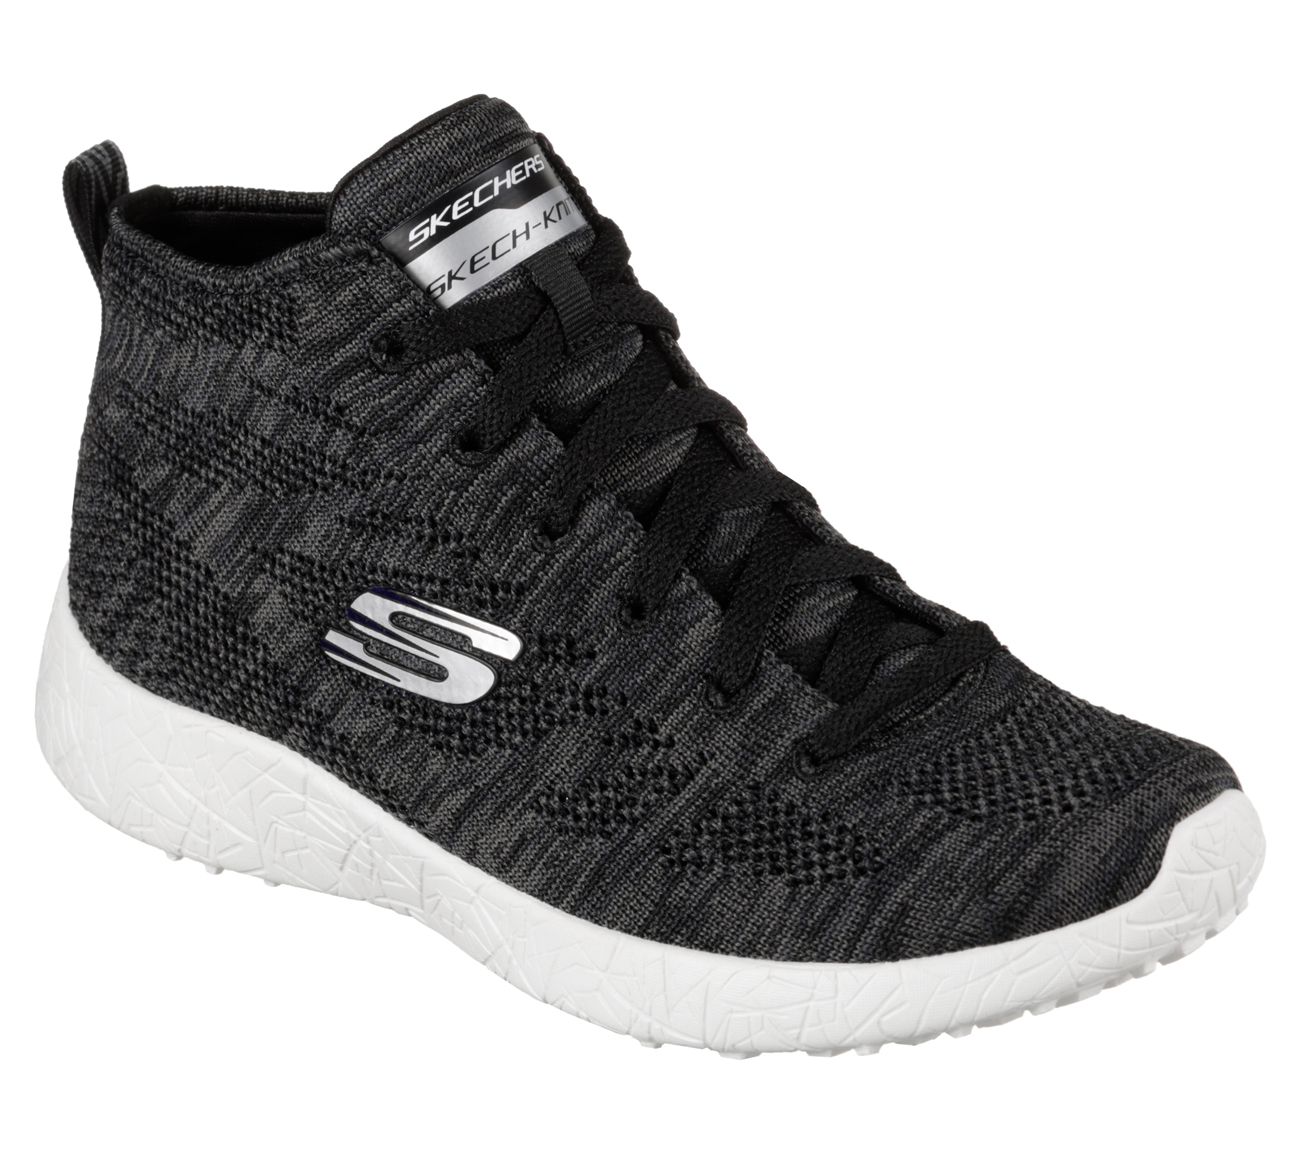 Skechers Shoes For Girls High Tops